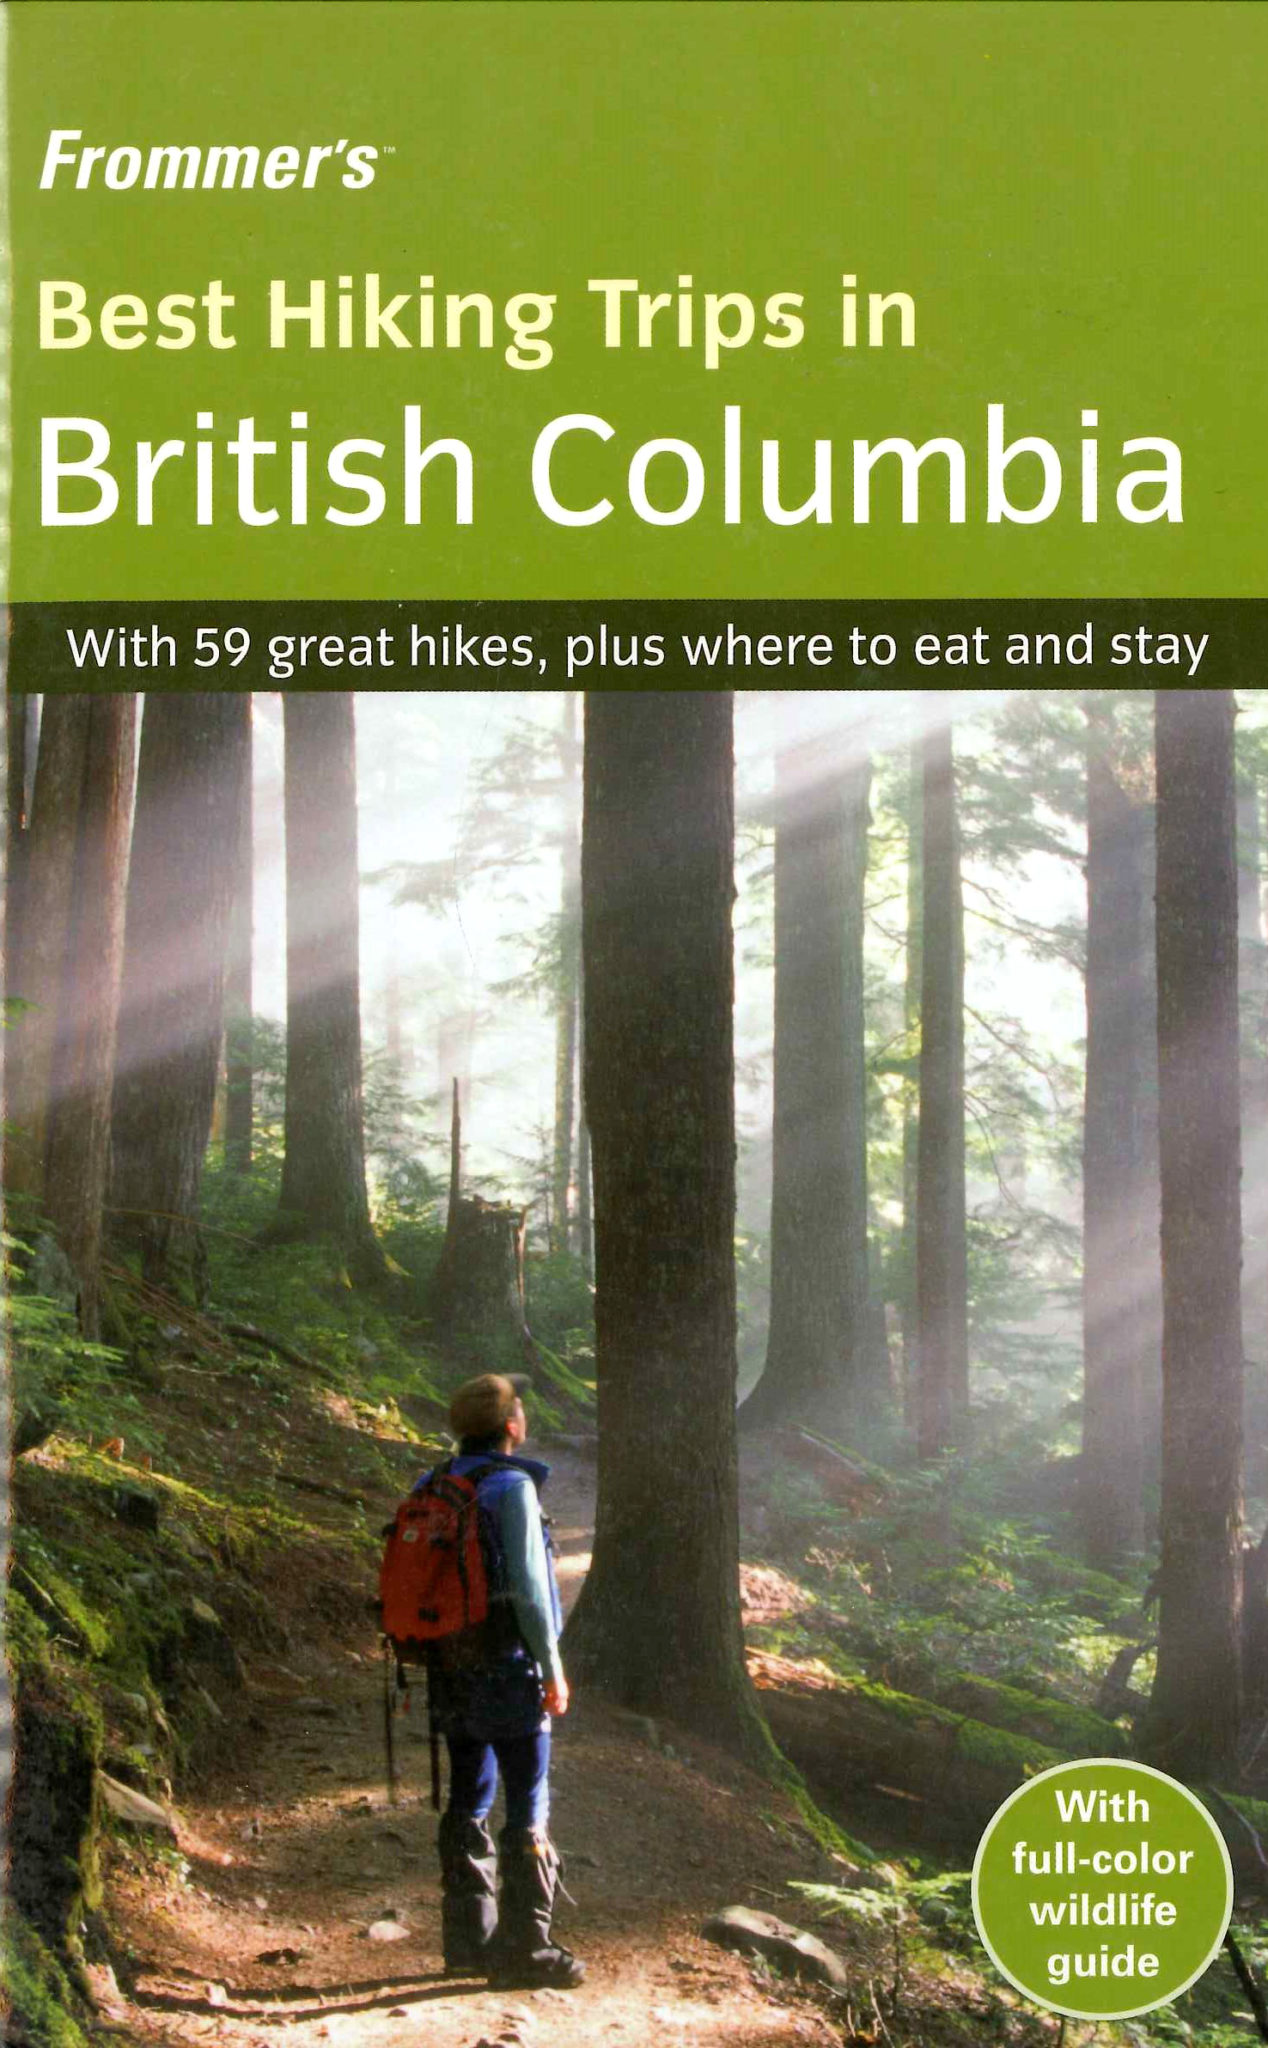 Best Hiking Trips in British Columbia